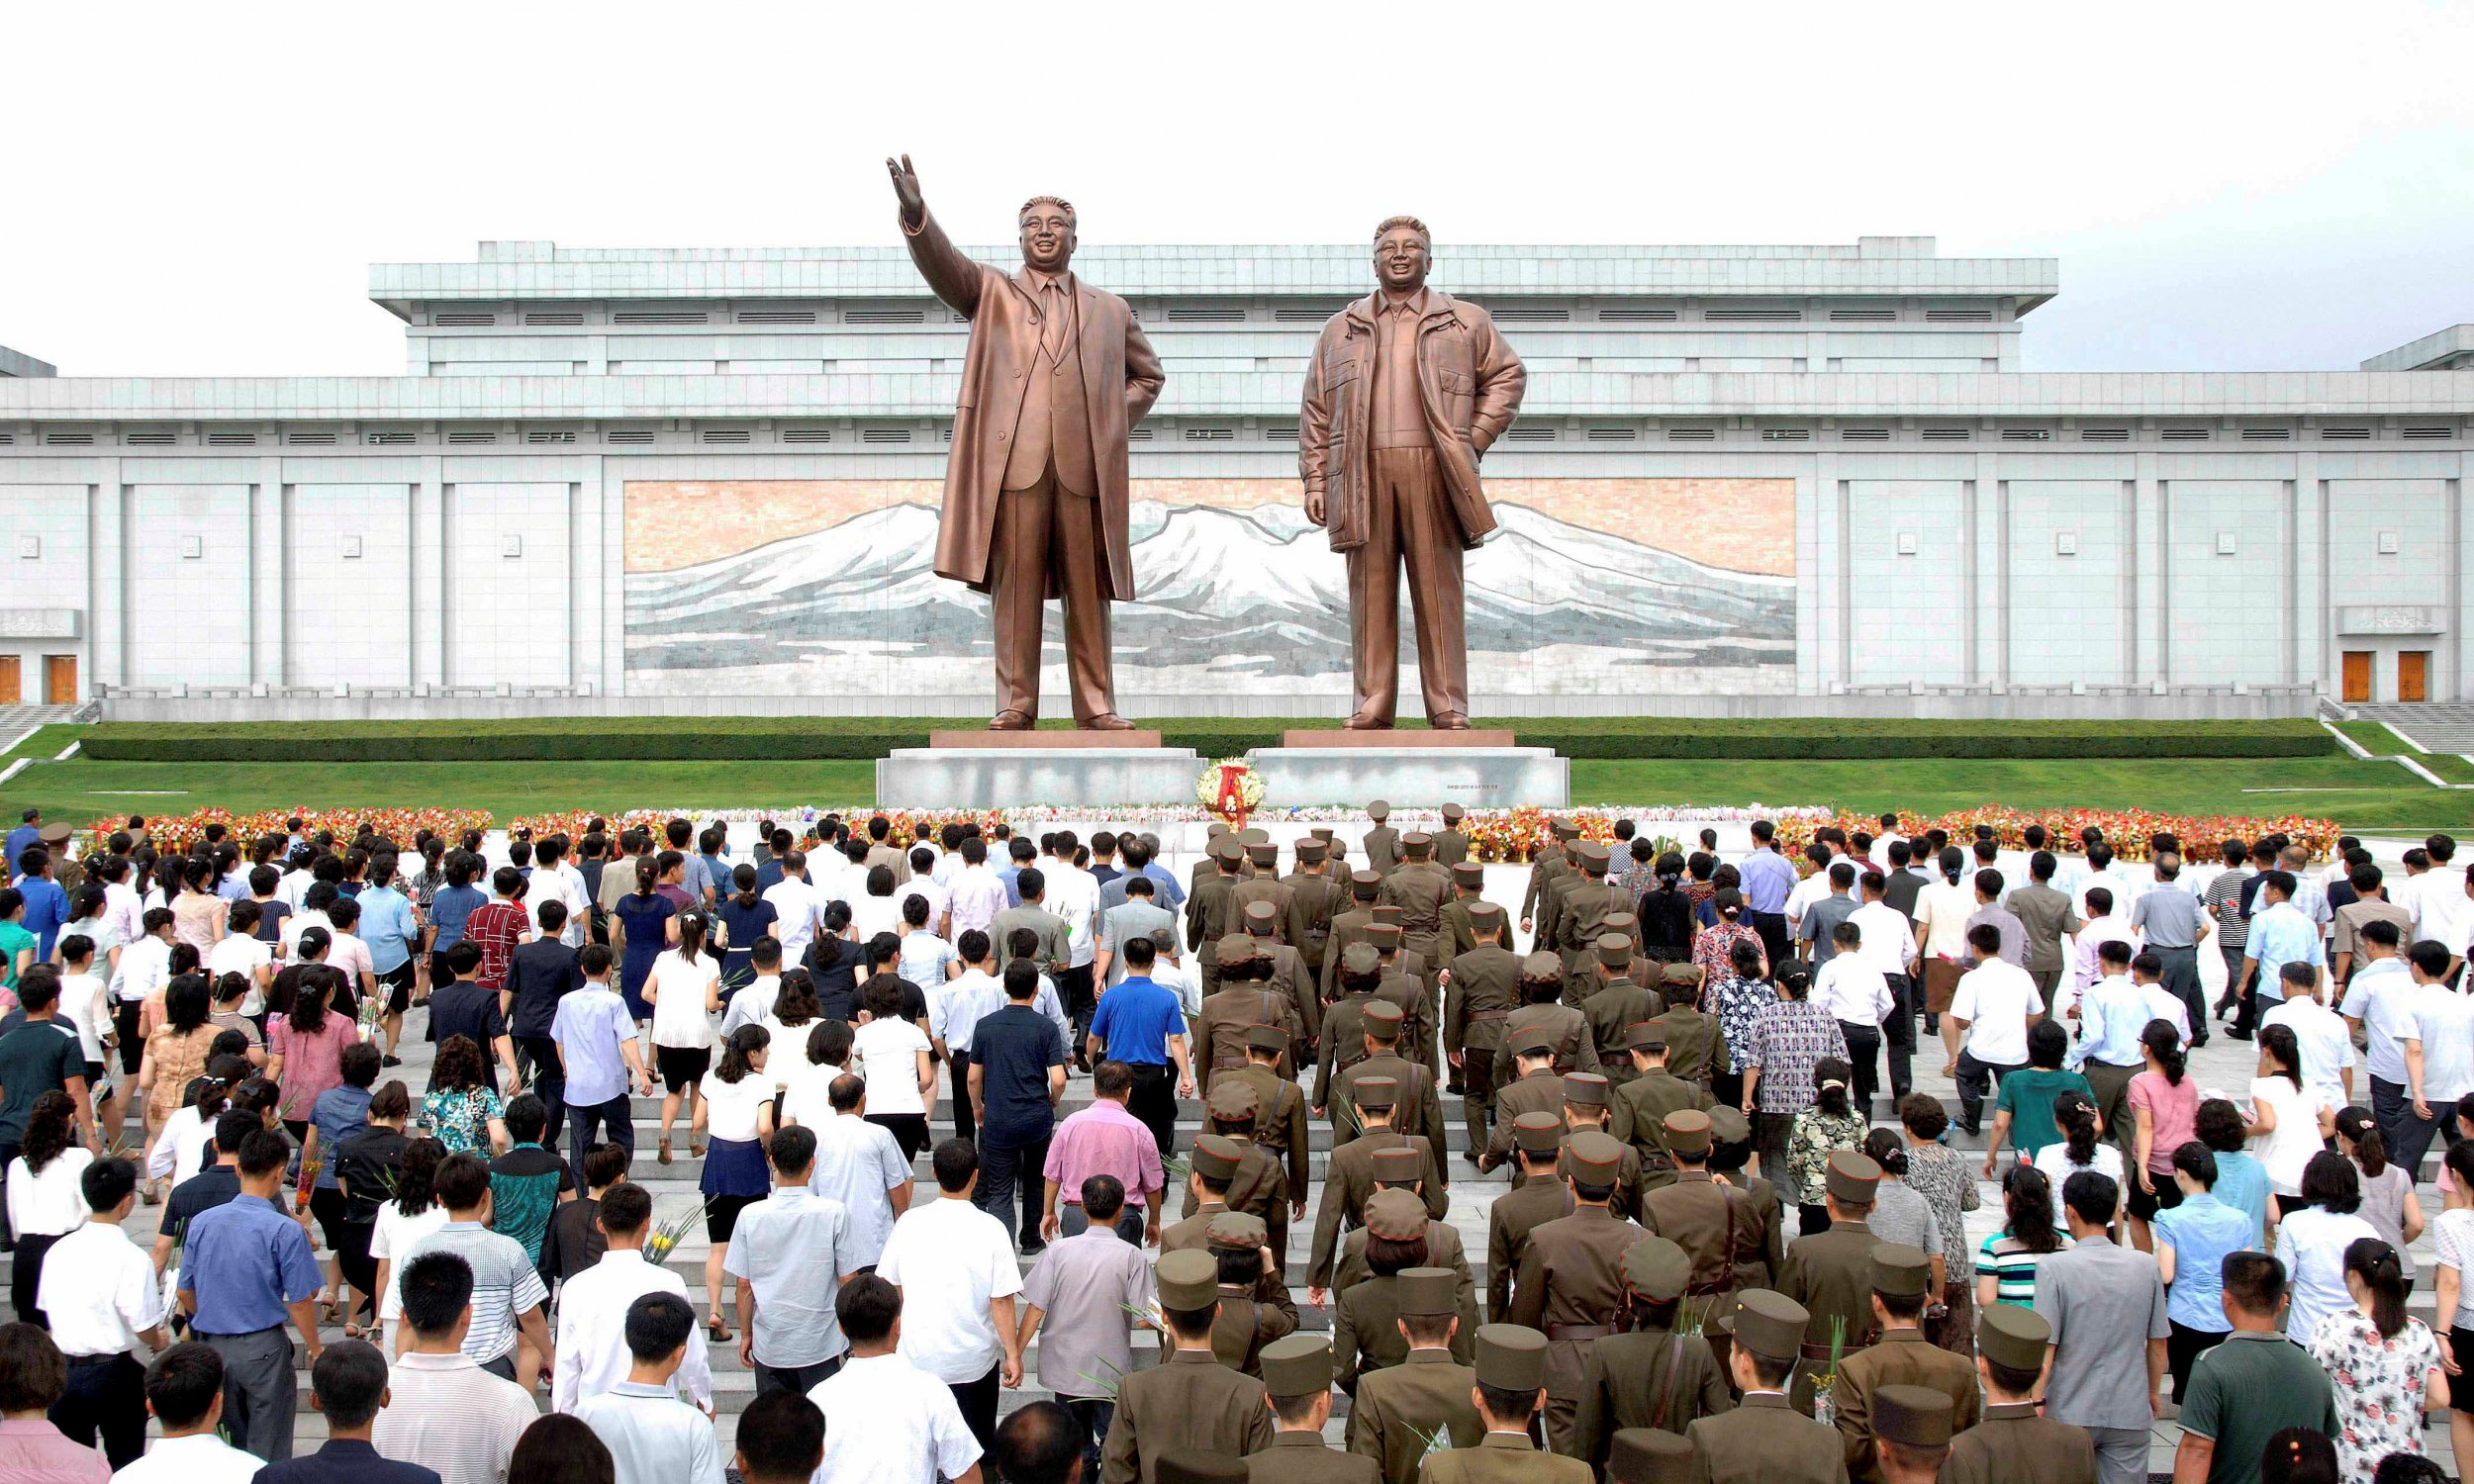 North korea how kim jong uns family was picked by russia to lead 23rd anniversary of demise of kim il sung thecheapjerseys Choice Image